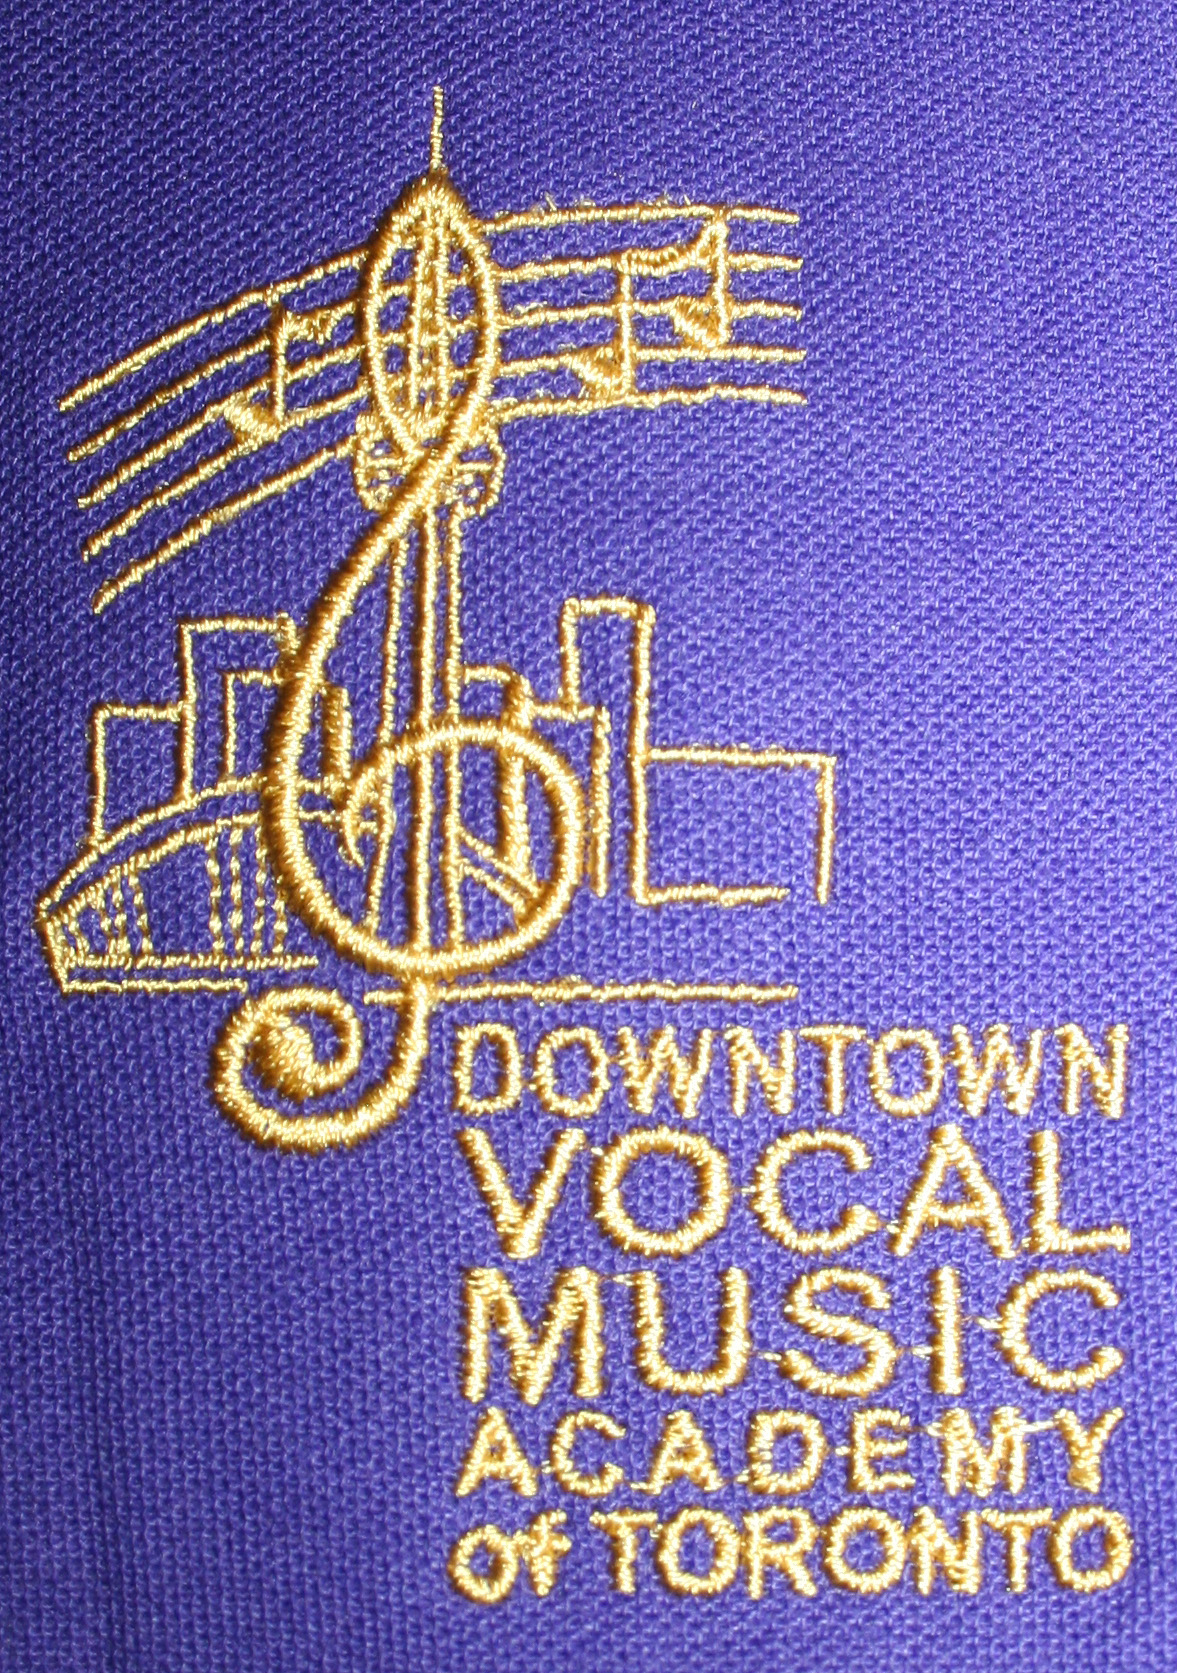 vocal music academy at ryerson community school